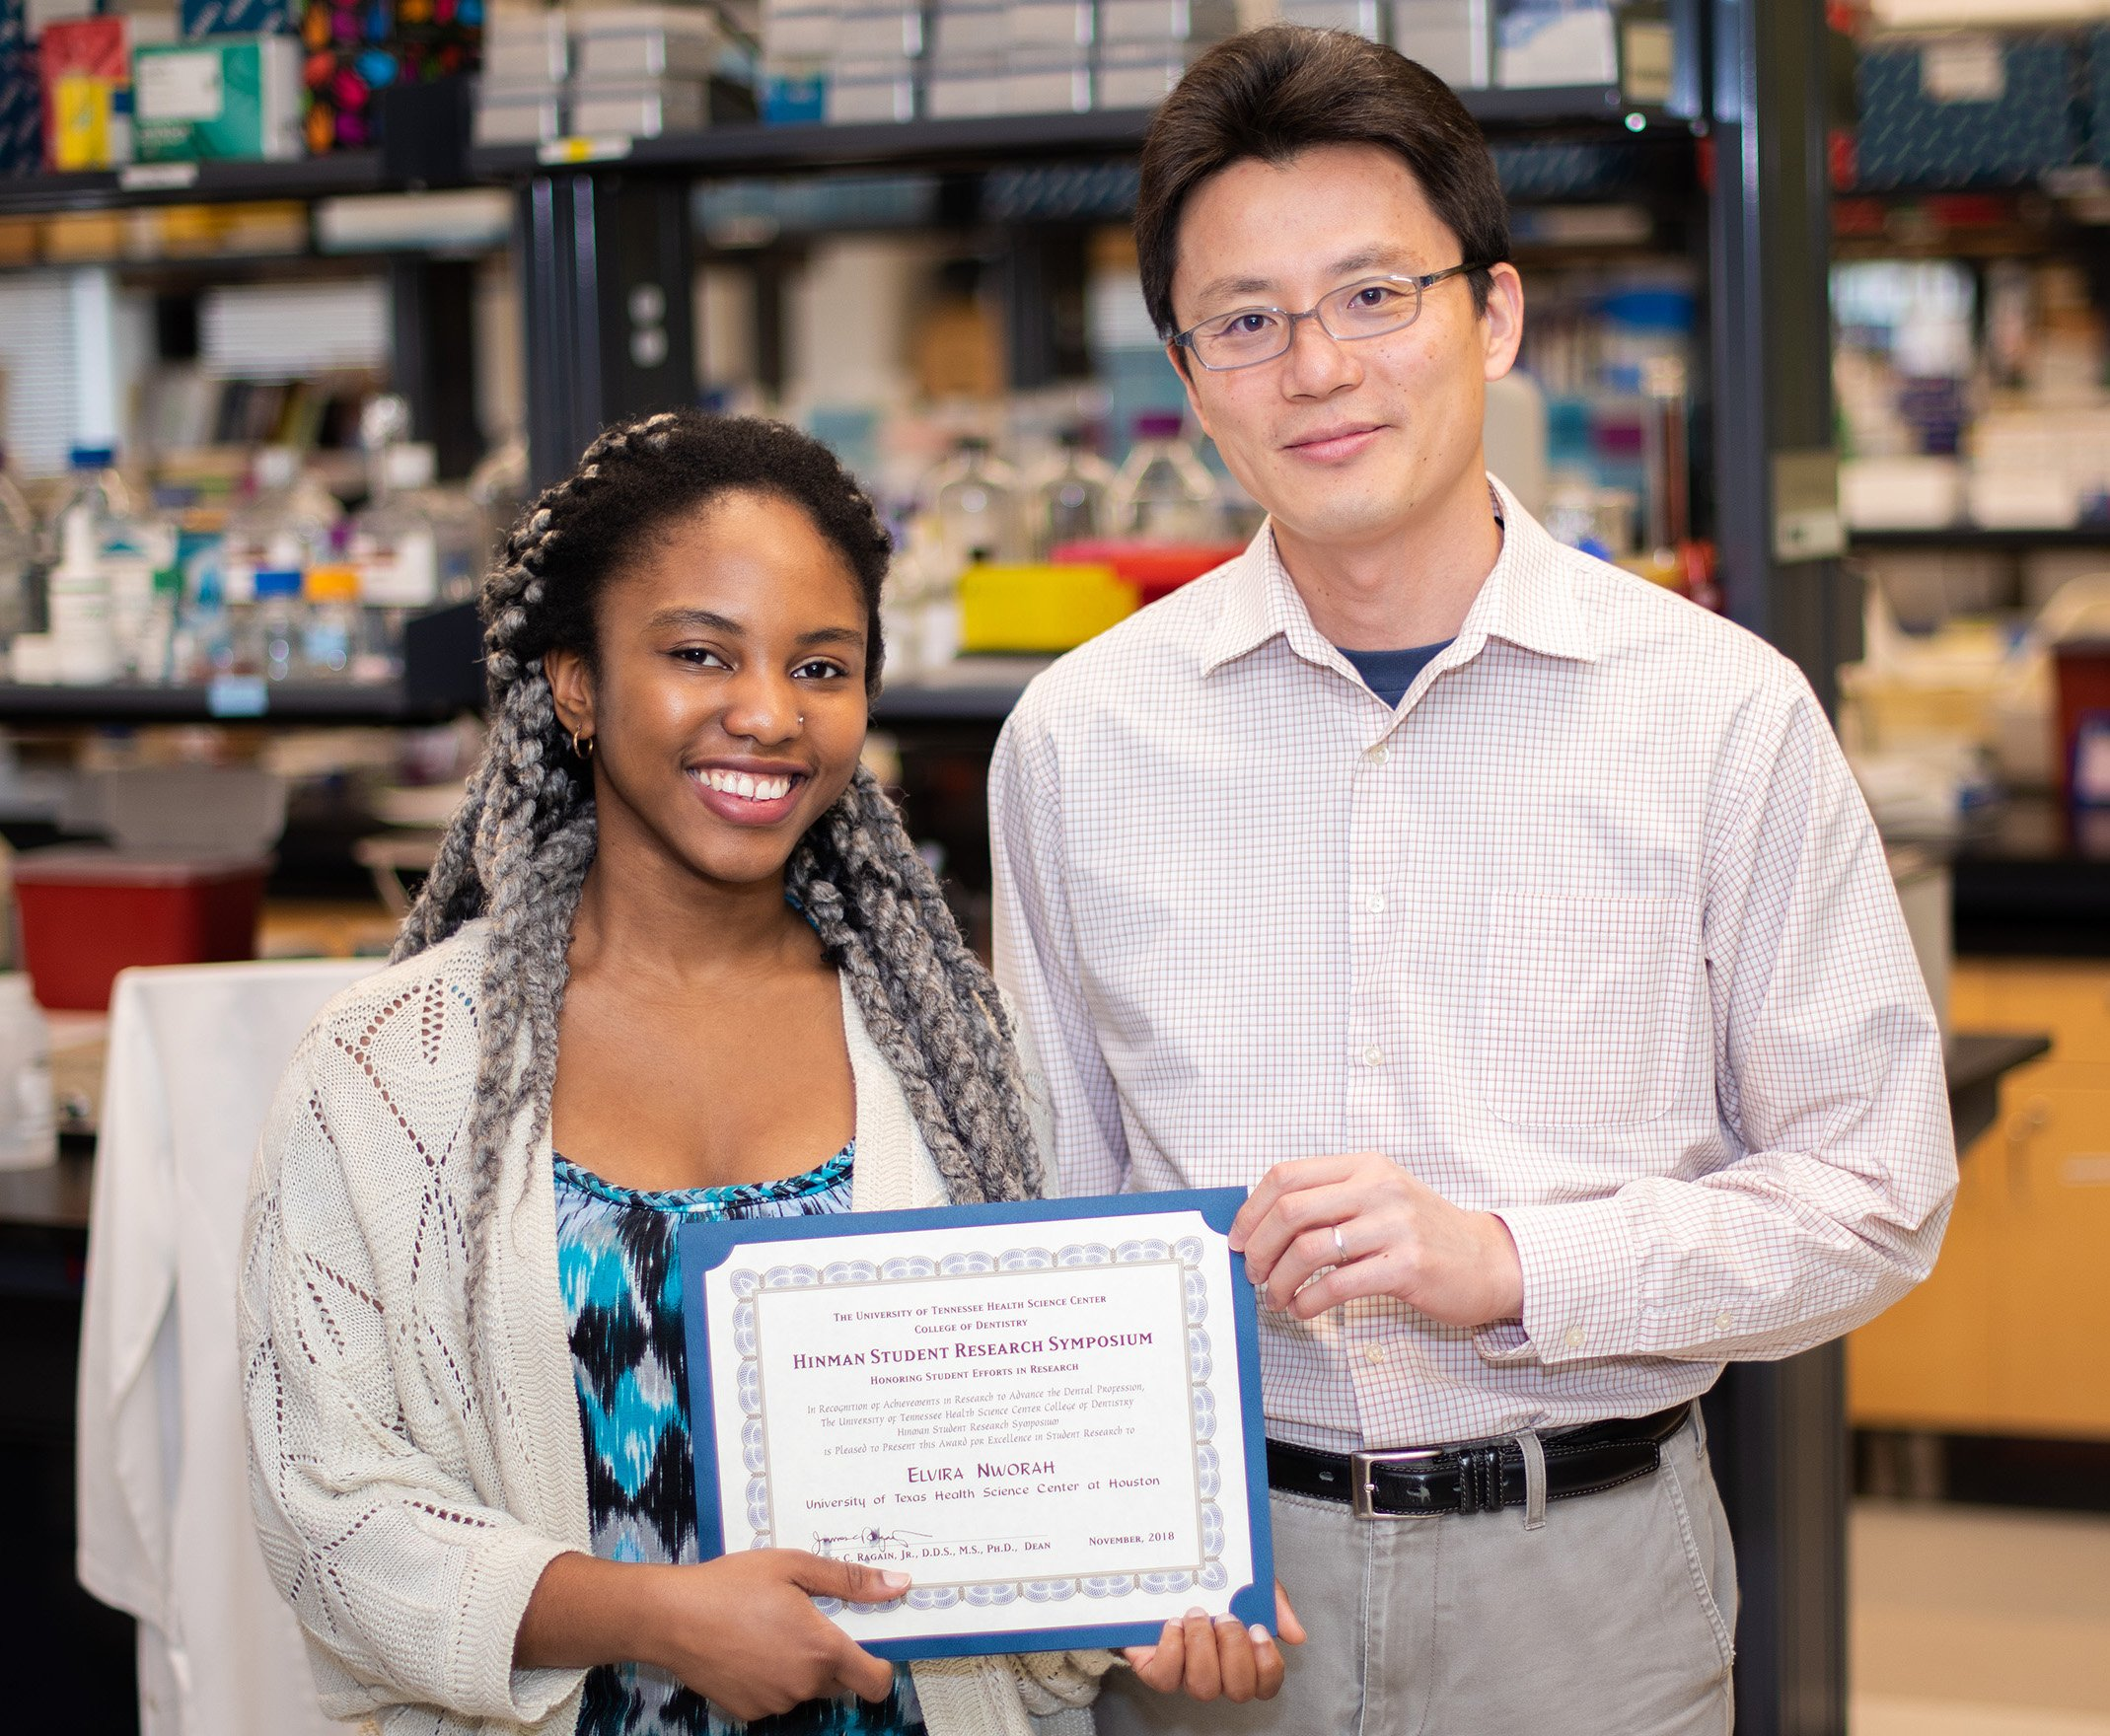 UTHealth dental student Elvira Nworah holds the NSRG Award she won at the Hinman Student Research Symposium. With her is Associate Professor Junichi Iwata, DDS, PhD.